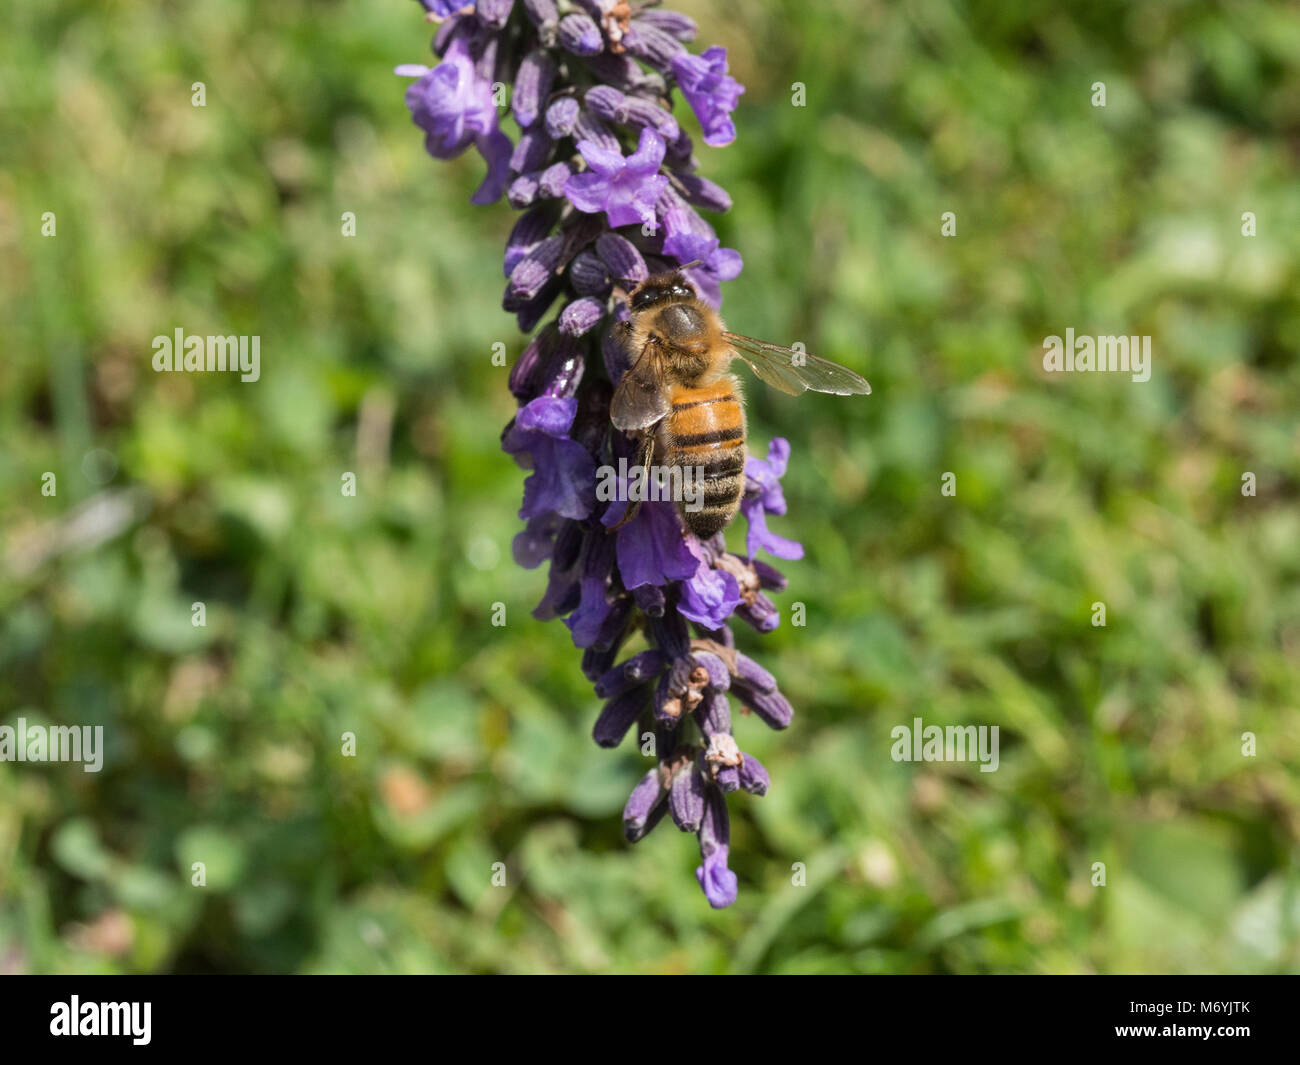 Close up of a honey bee feeding on a lavender flower spike - Stock Image